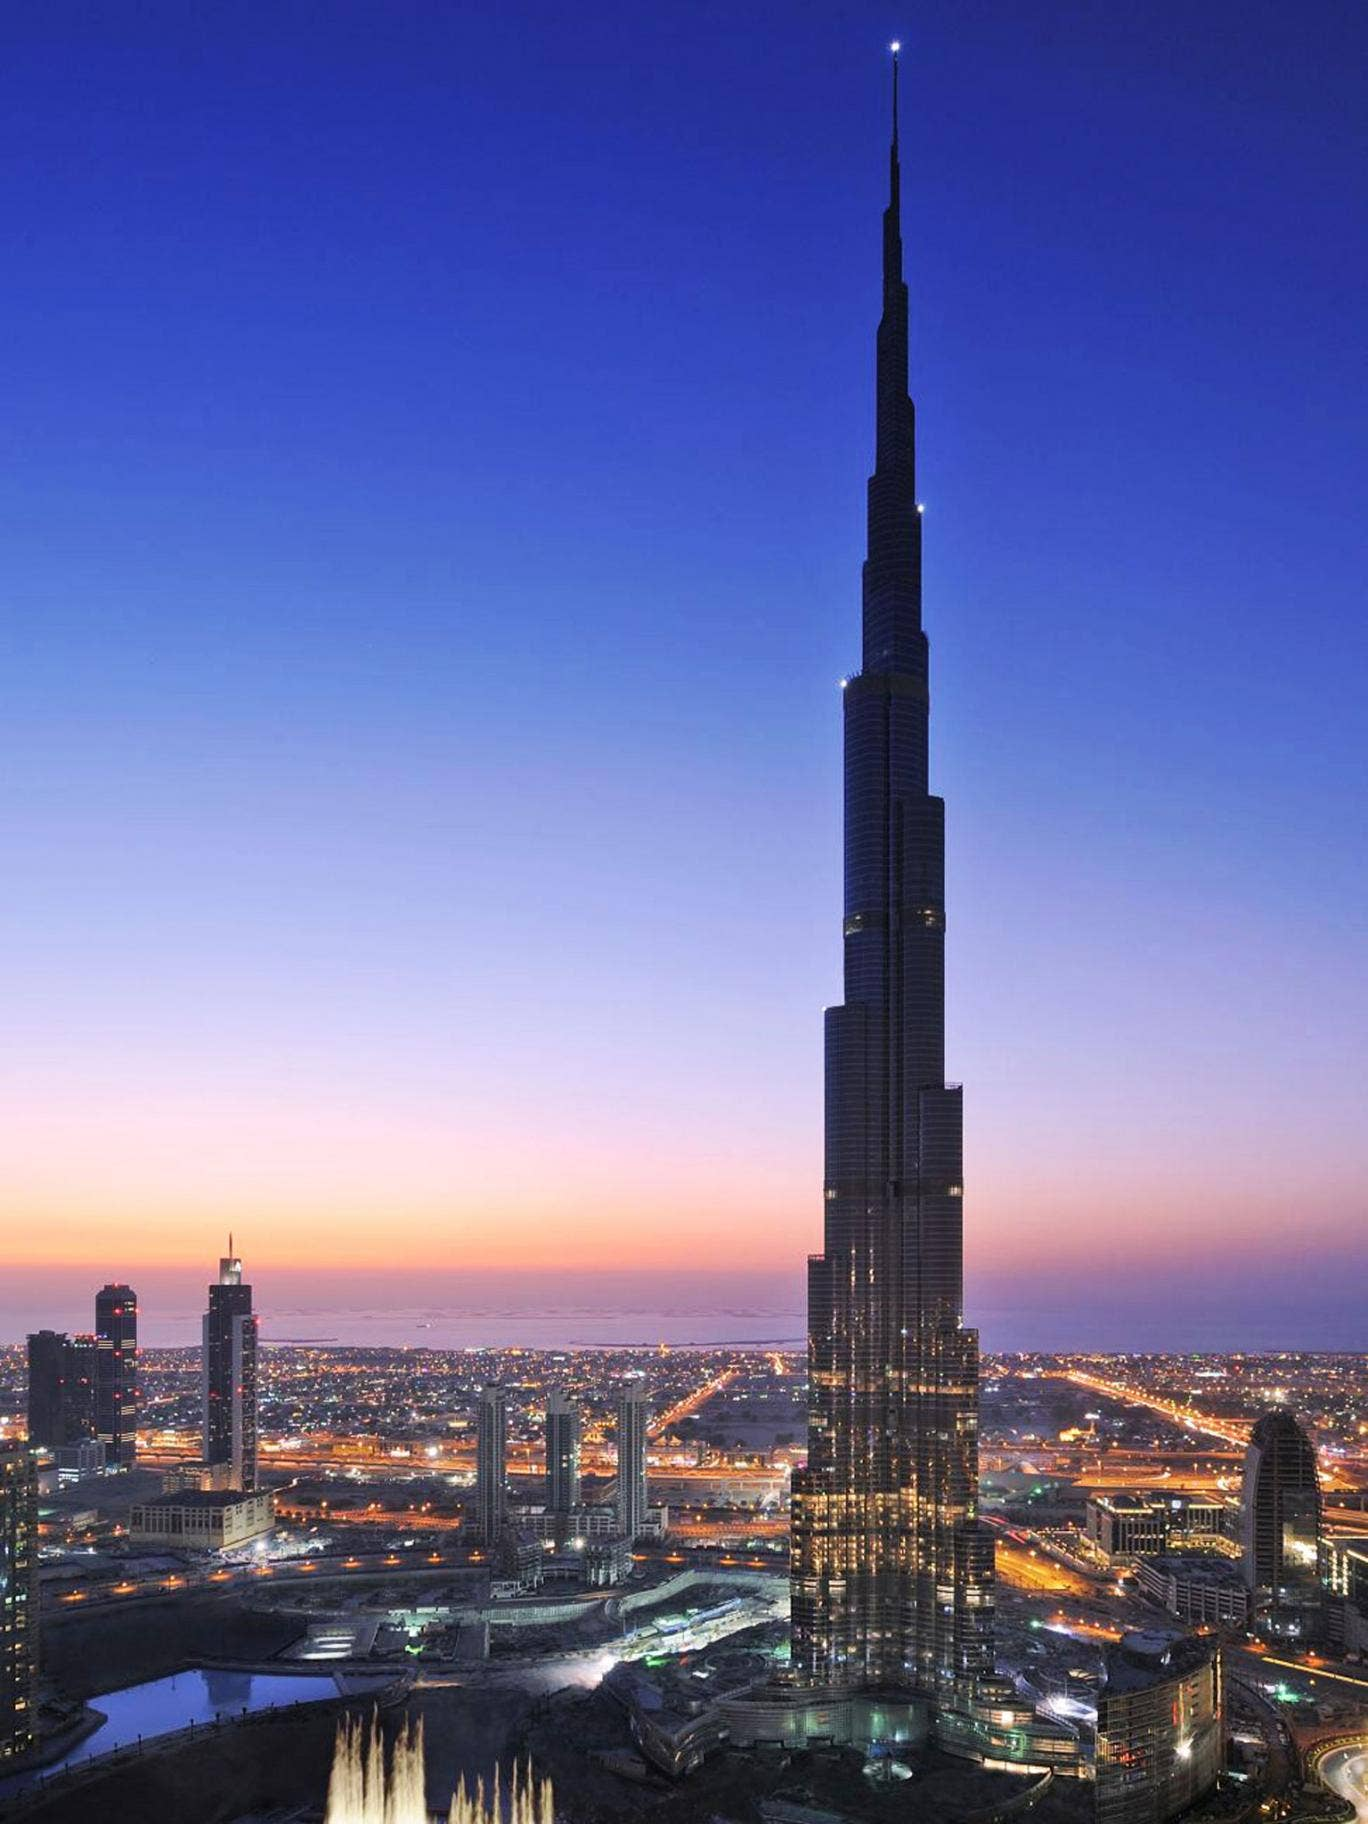 Tower record: the Burj Khalifa